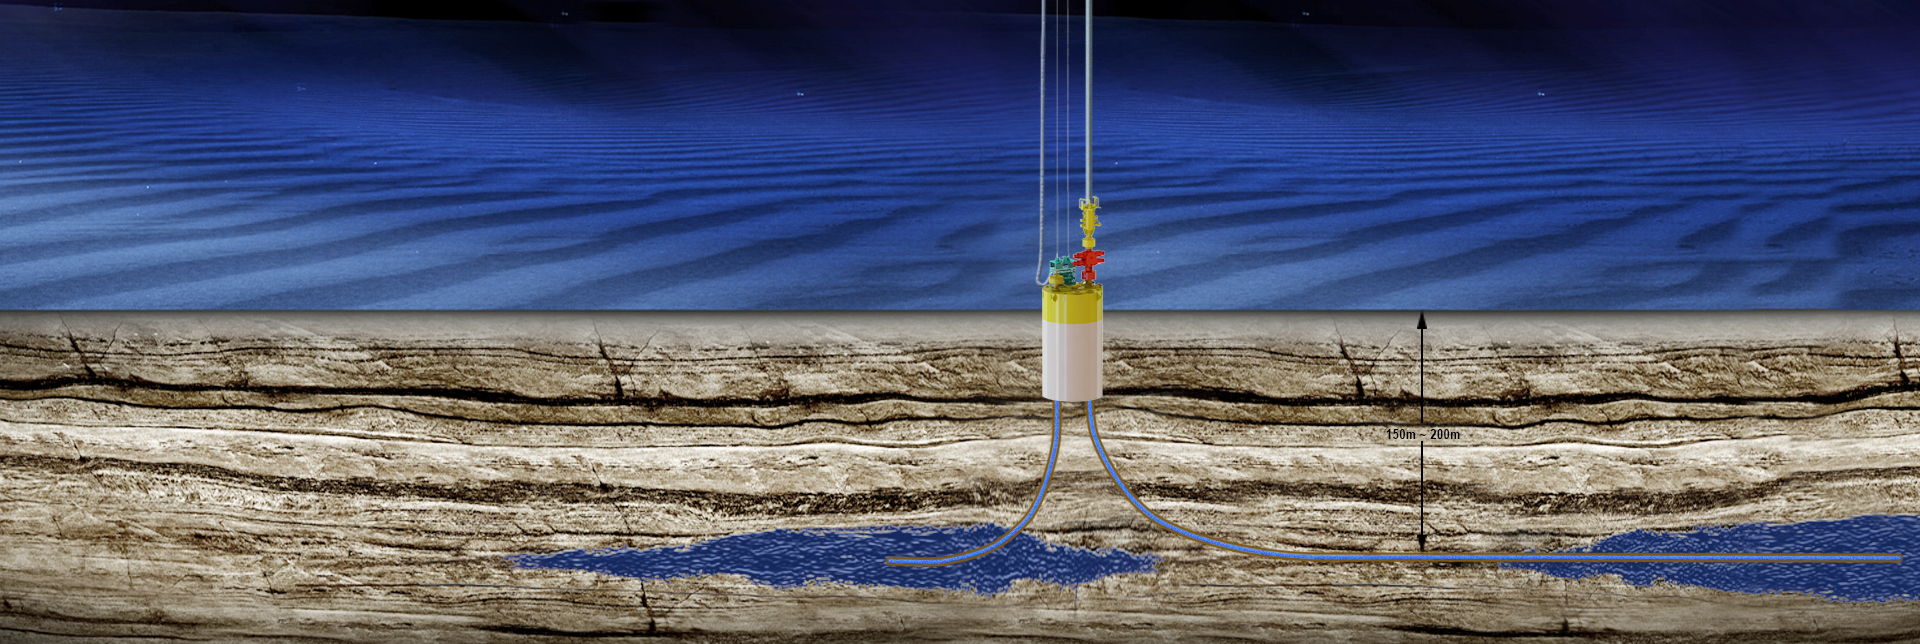 Subsea Gas Hydrate Exploration